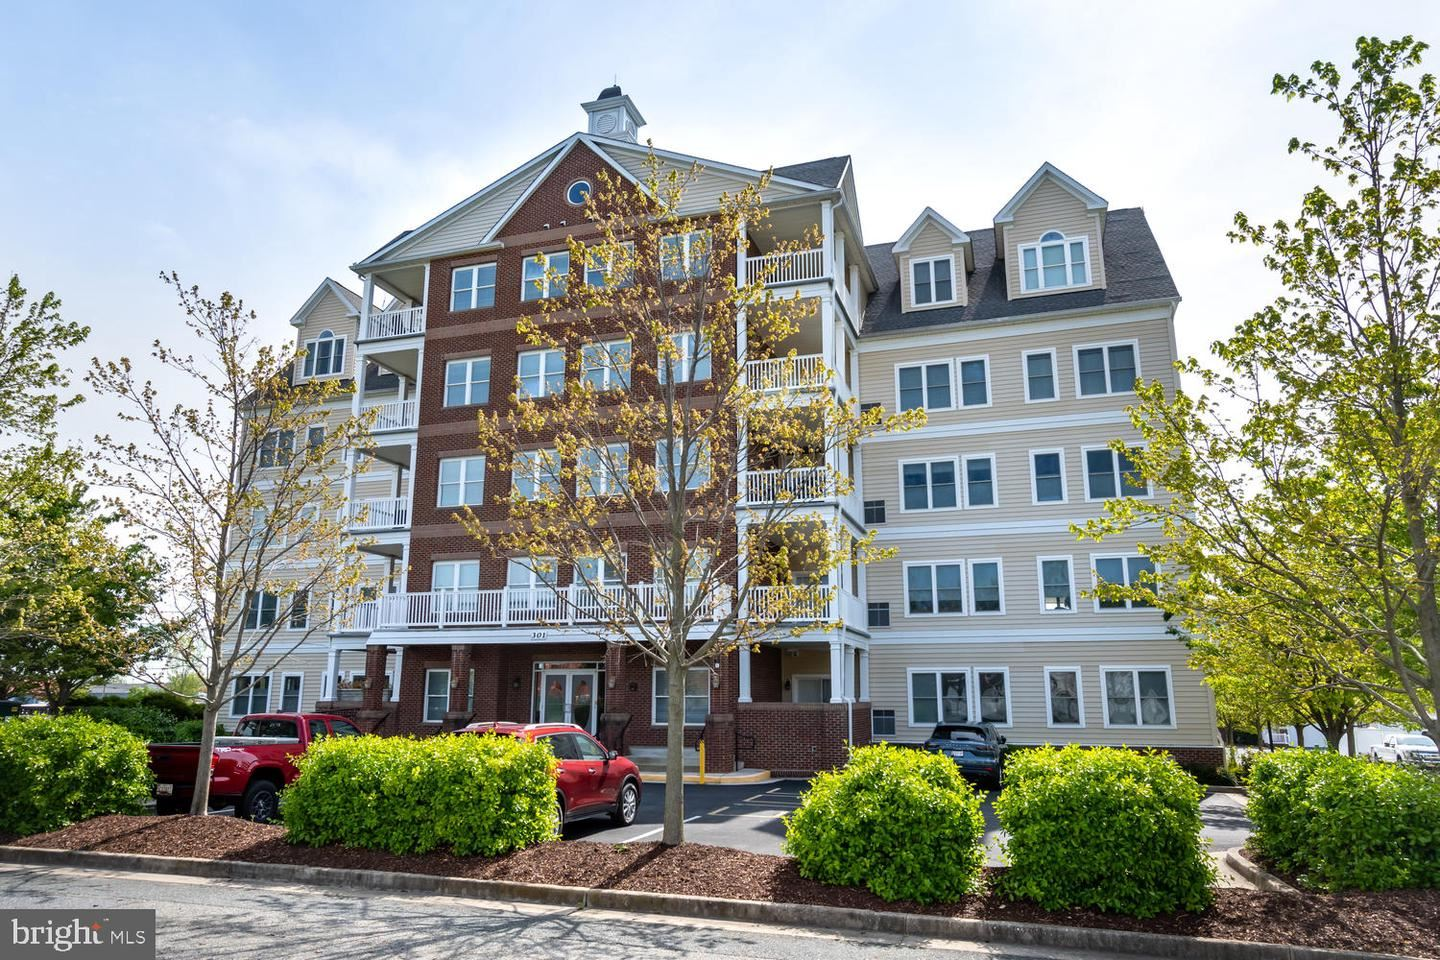 Photo of 301 MUIR ST #404, CAMBRIDGE, MD 21613 (MLS # MDDO125344)